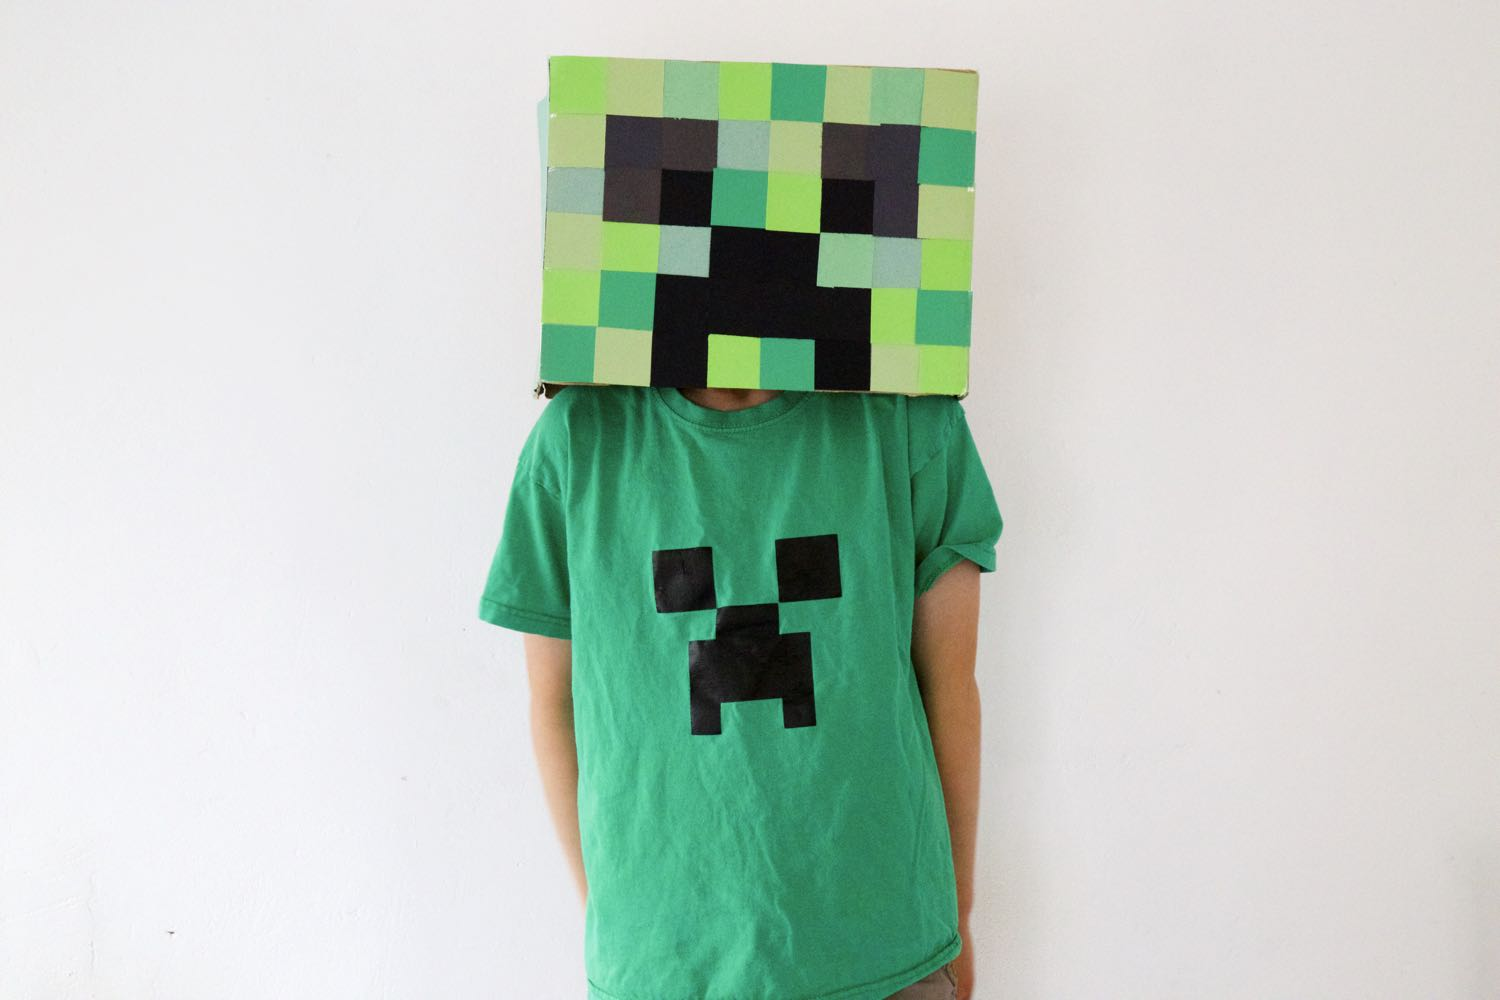 Halloween Creeper head worn with a green creeper shirt.